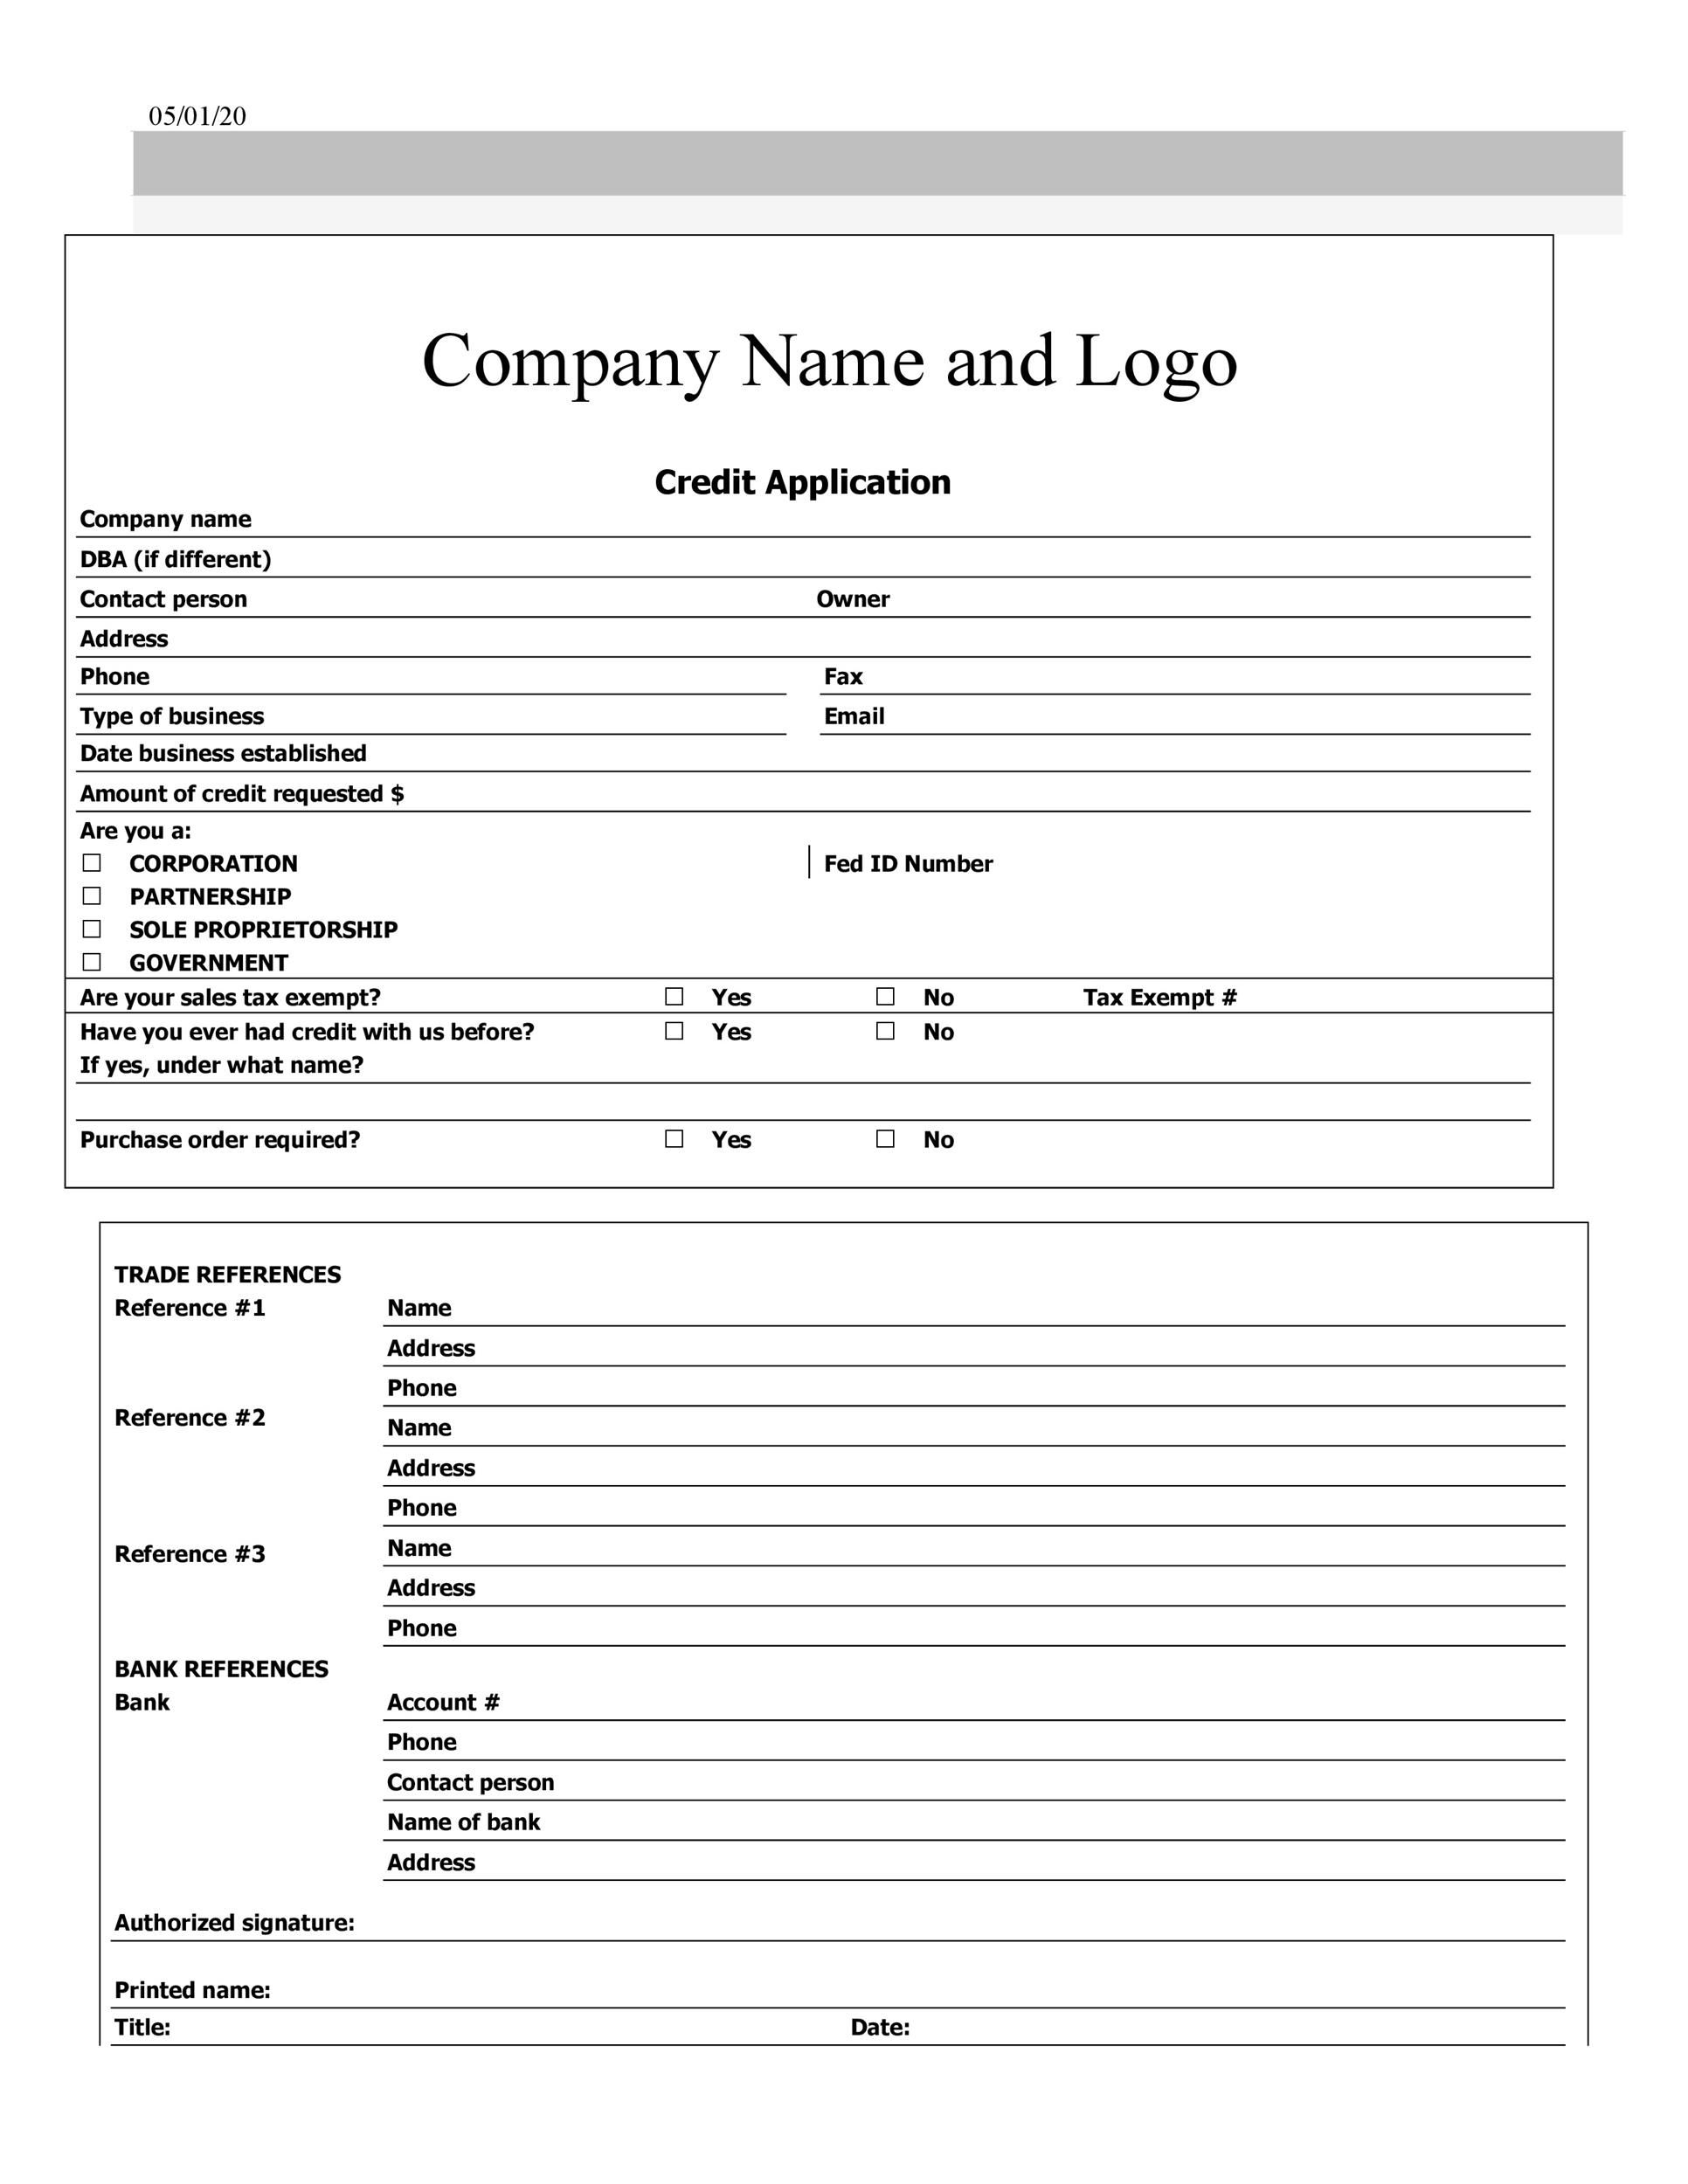 008 Remarkable Busines Credit Application Template South Africa Image  Form Word FreeFull